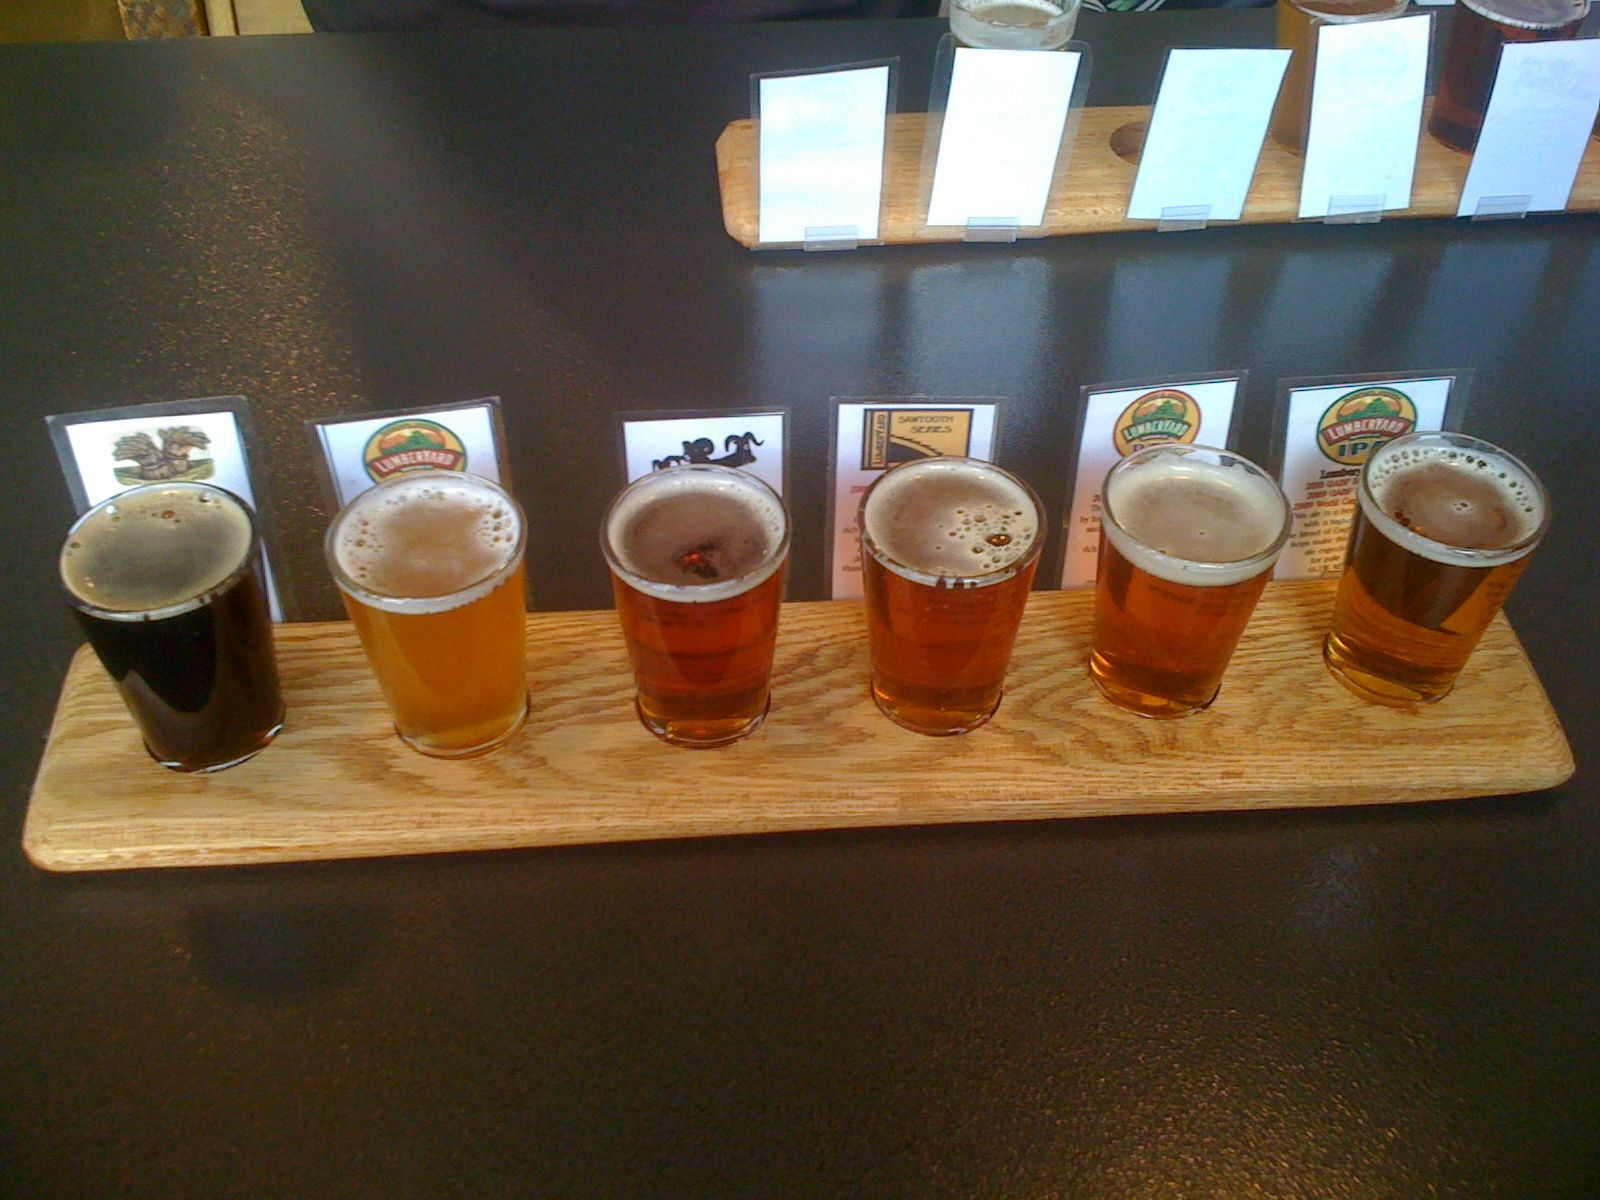 Top 9 Brews Along the Ale Trail in Bucks County